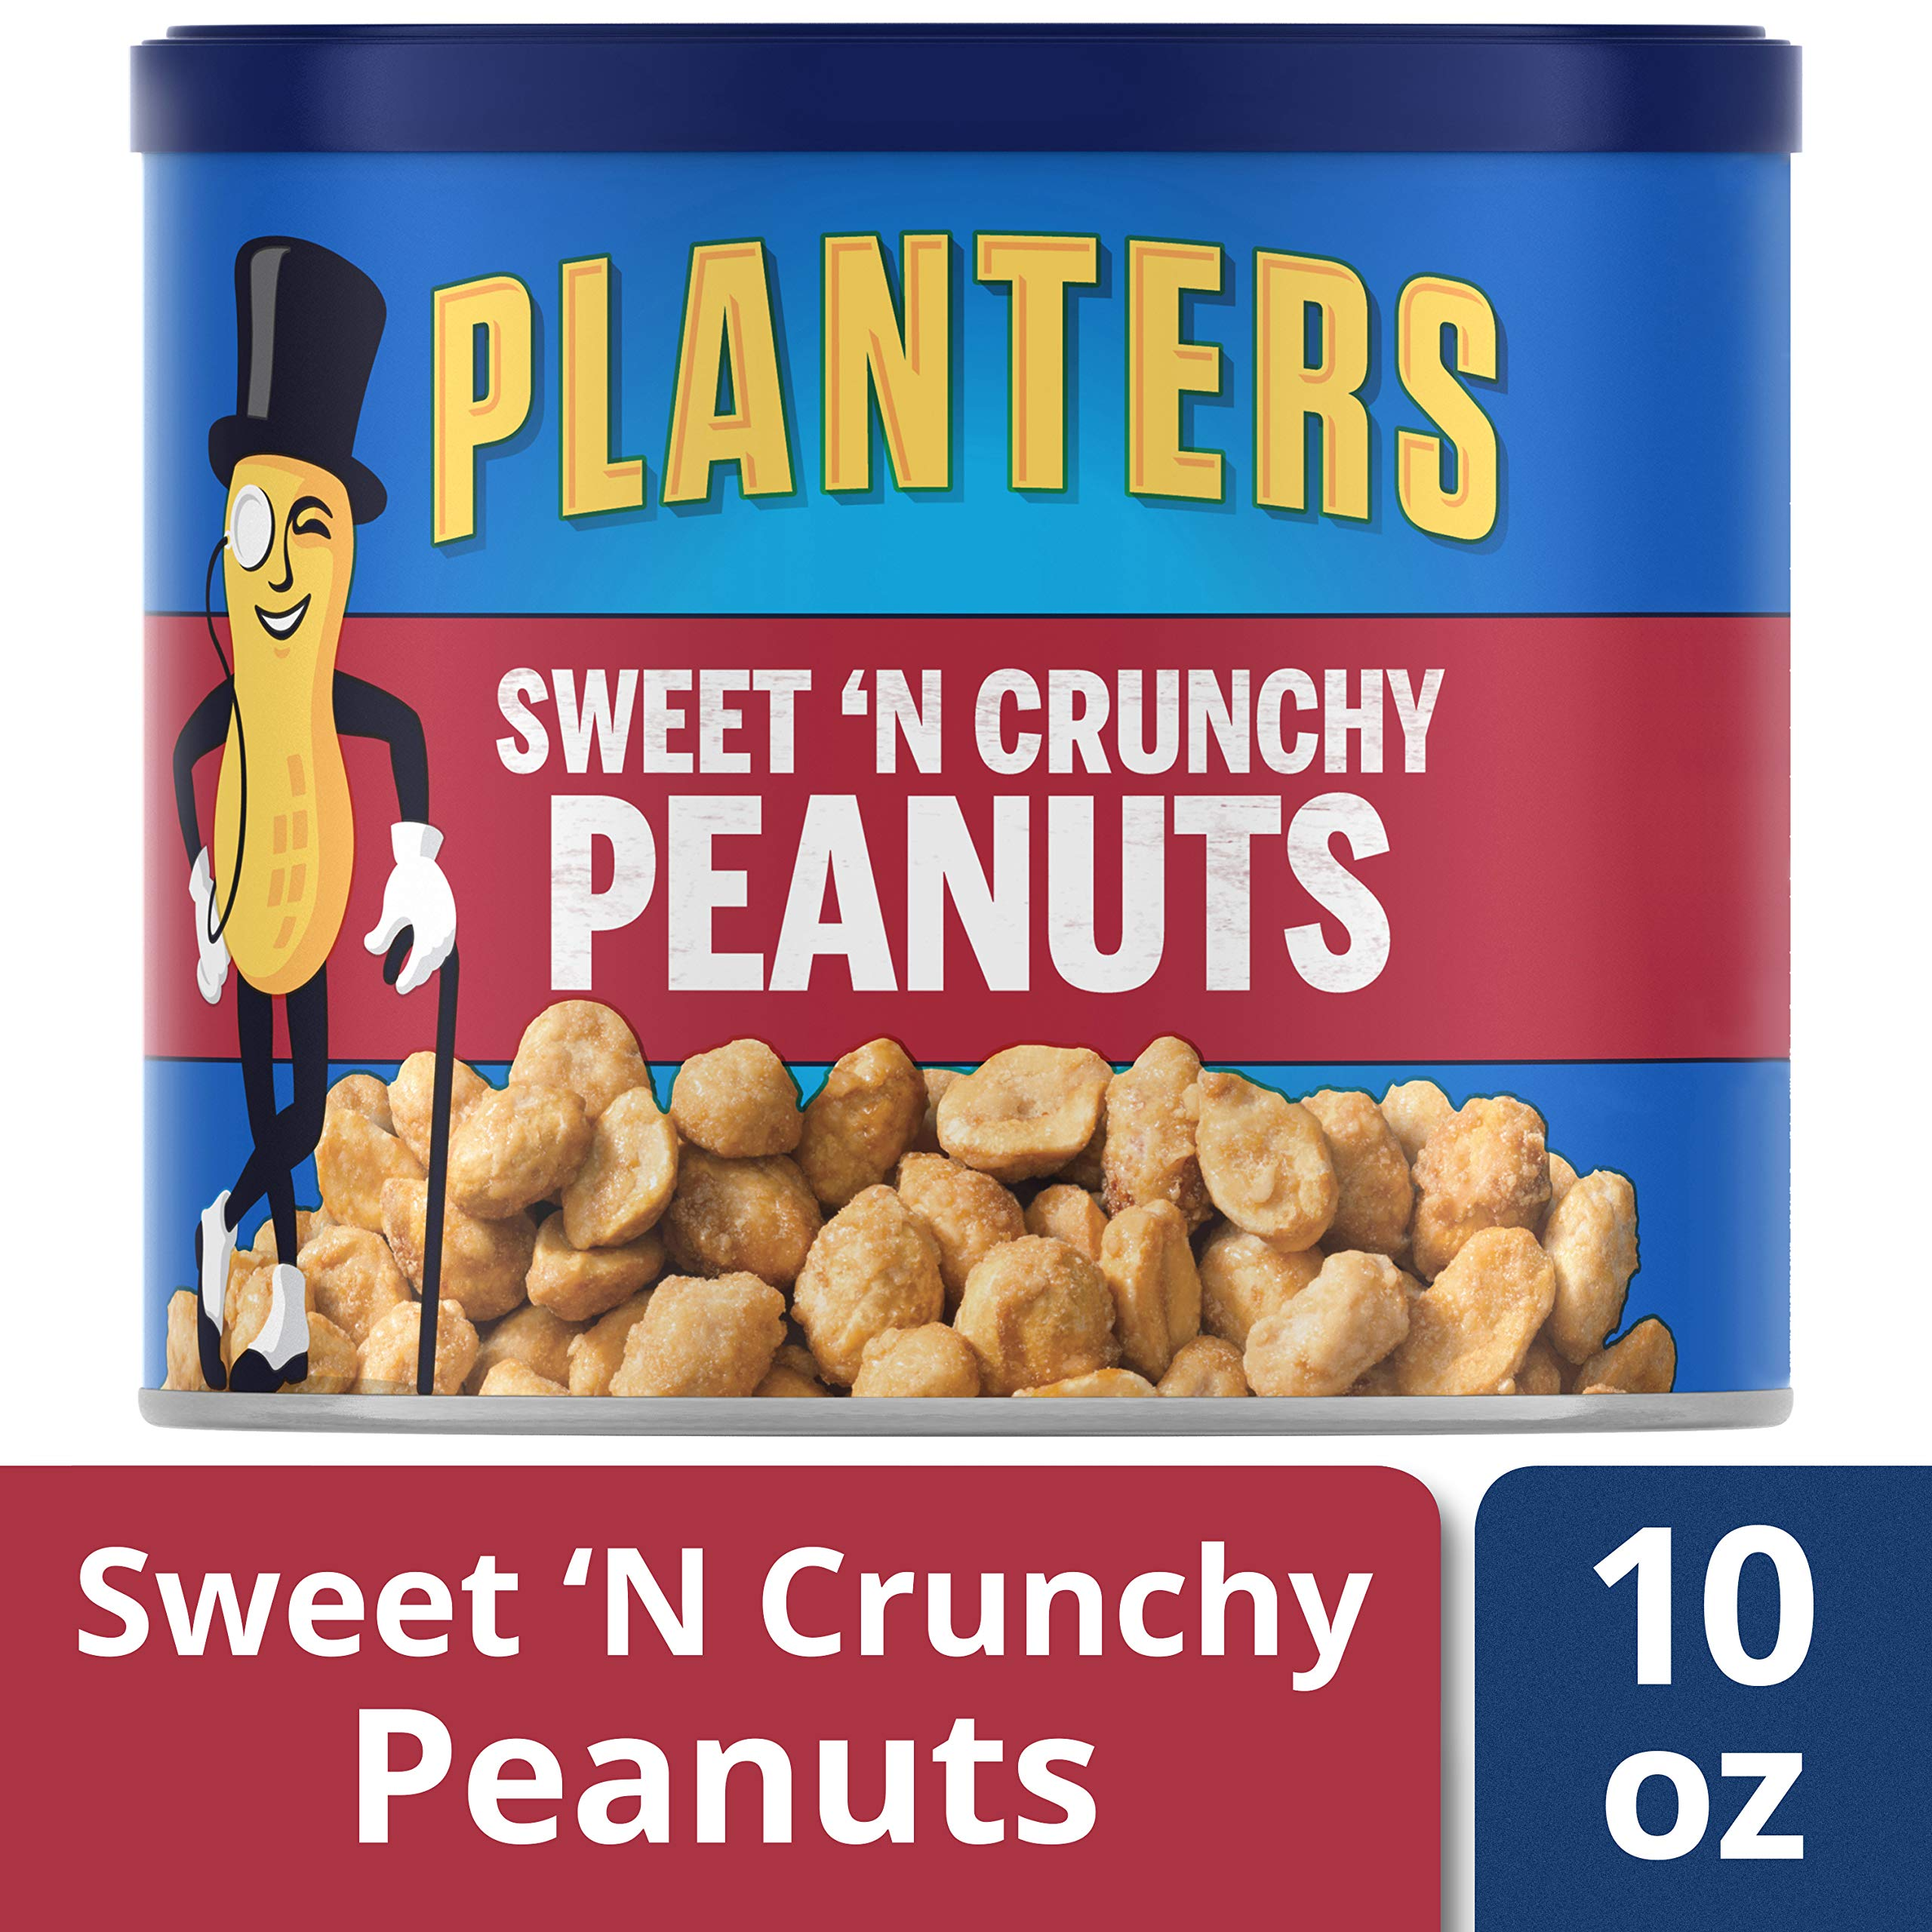 Planters Sweet N' Crunchy Peanuts, 10 oz Canister , Pack of 6 by Planters